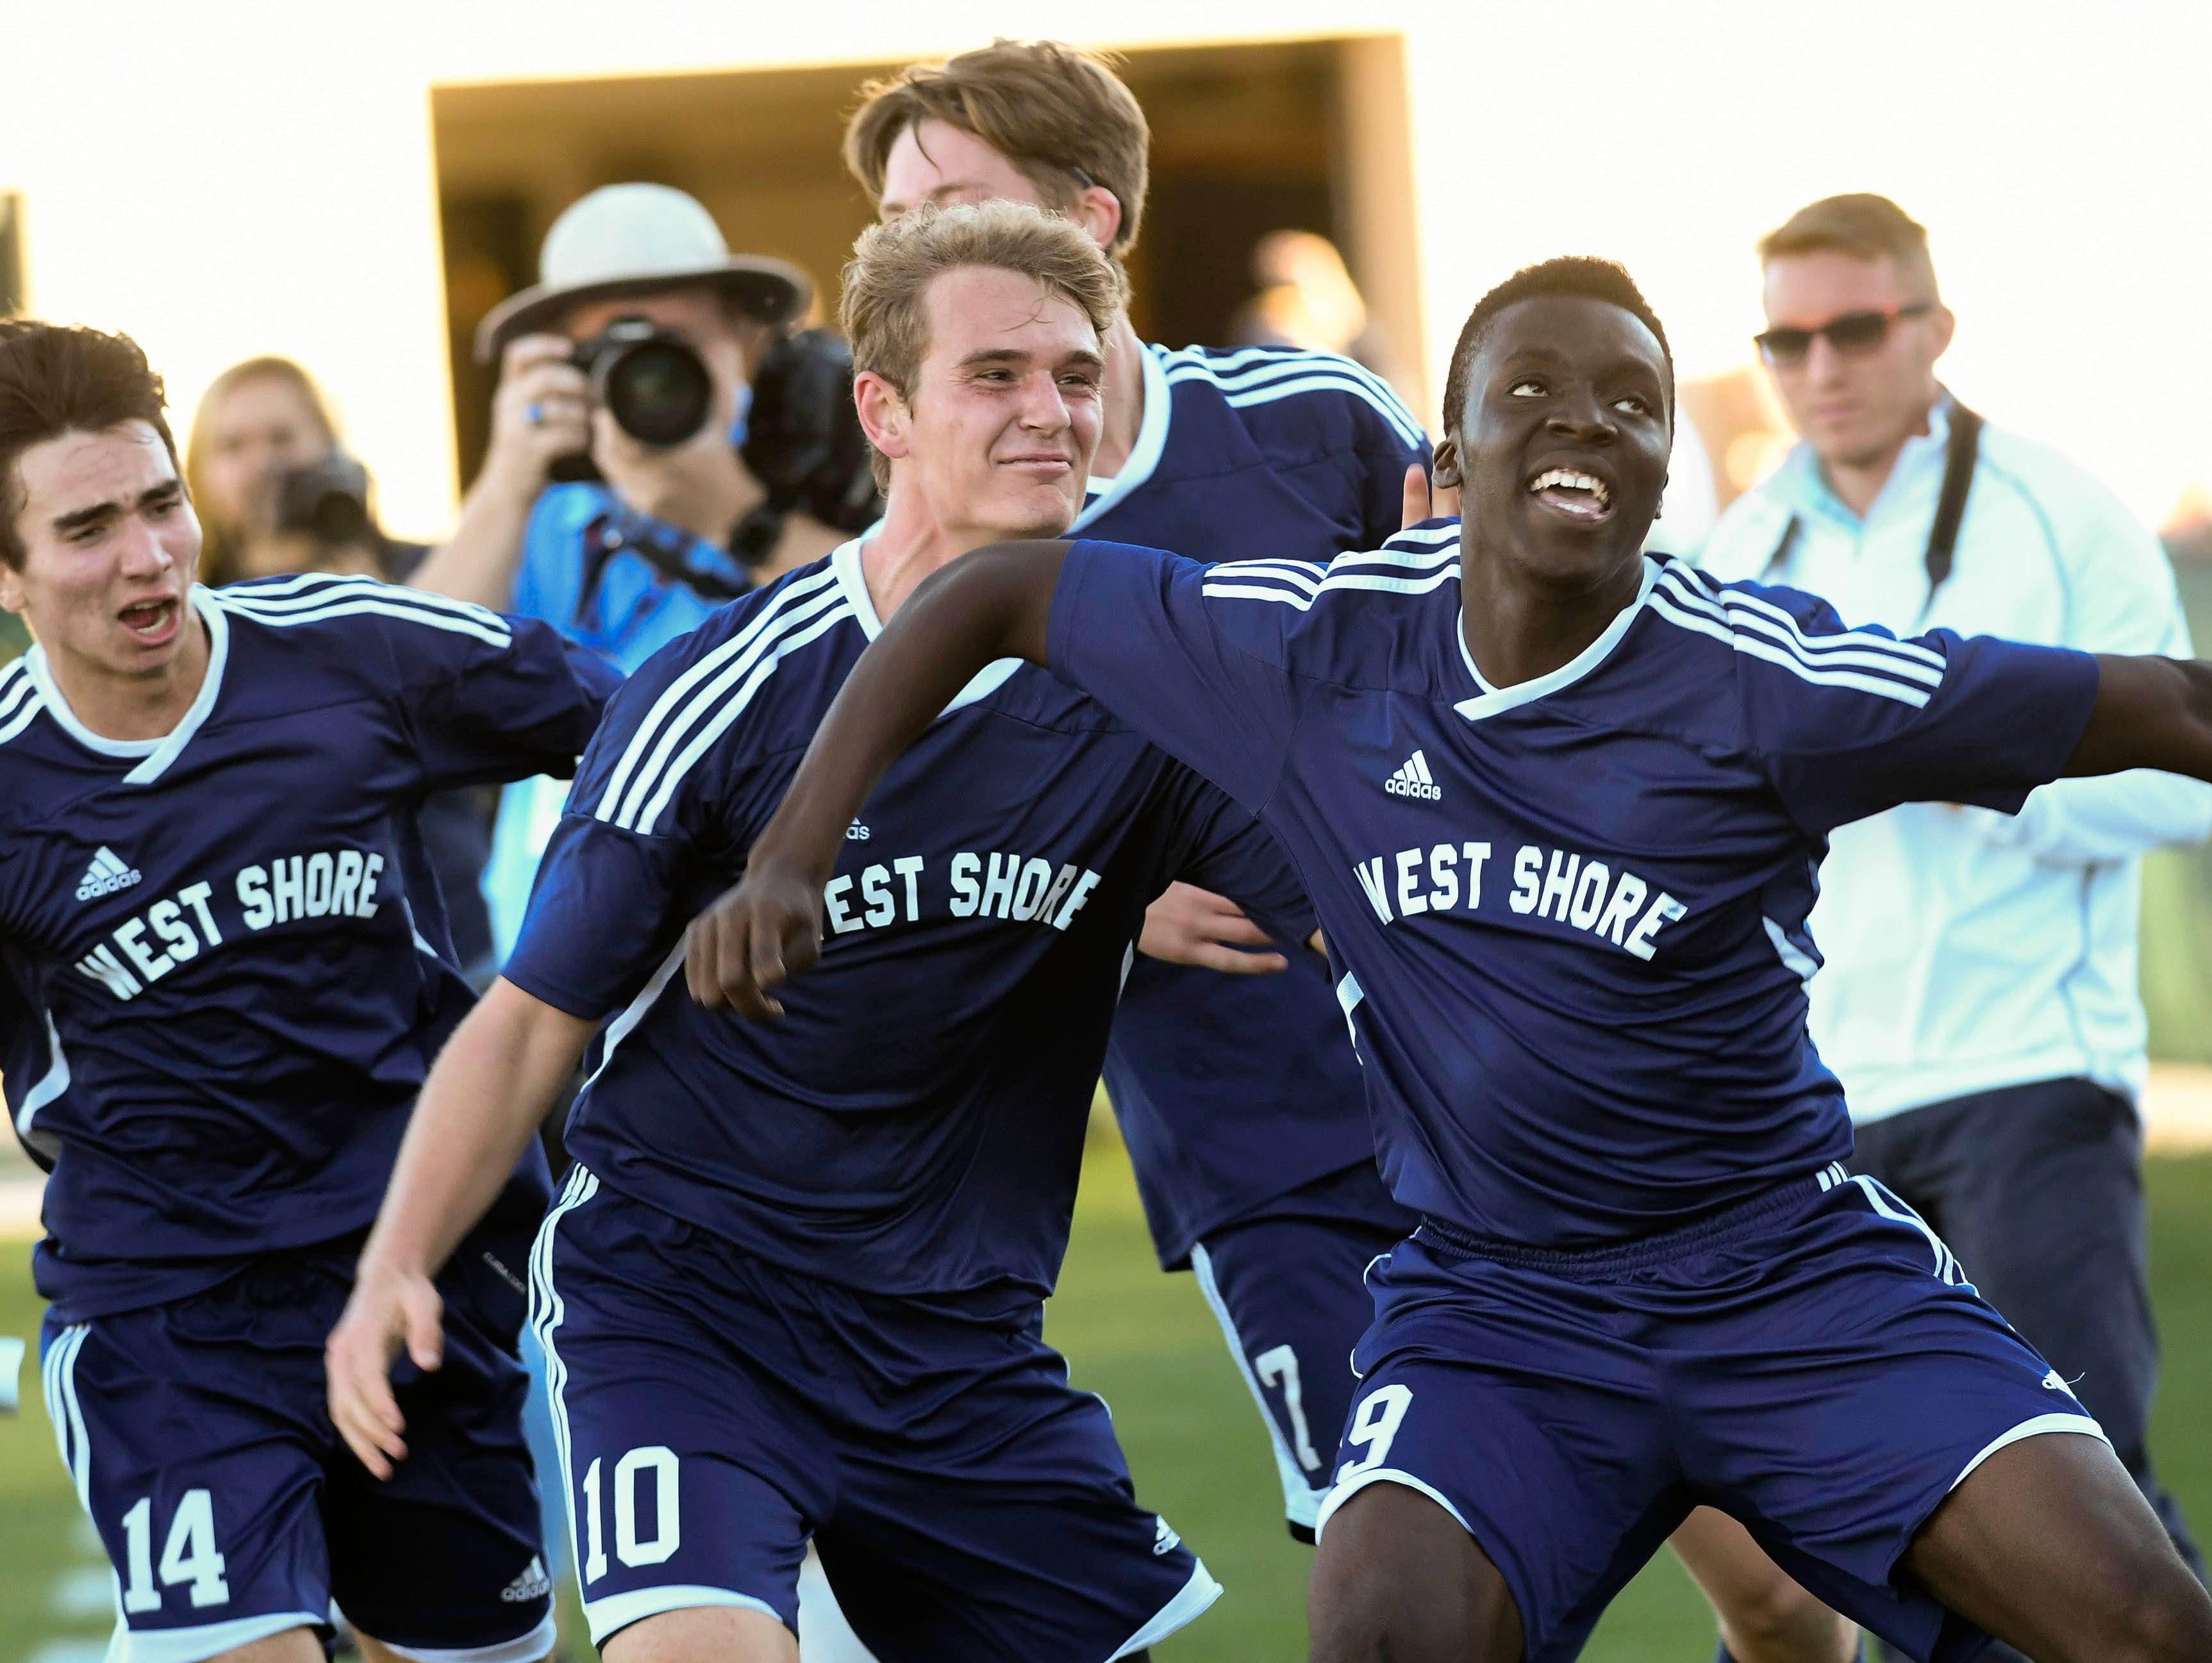 West Shore players celebrate the game winning goal by Amugo Chukwunenye (19) during Thursday's Class 2A championship in Deland.